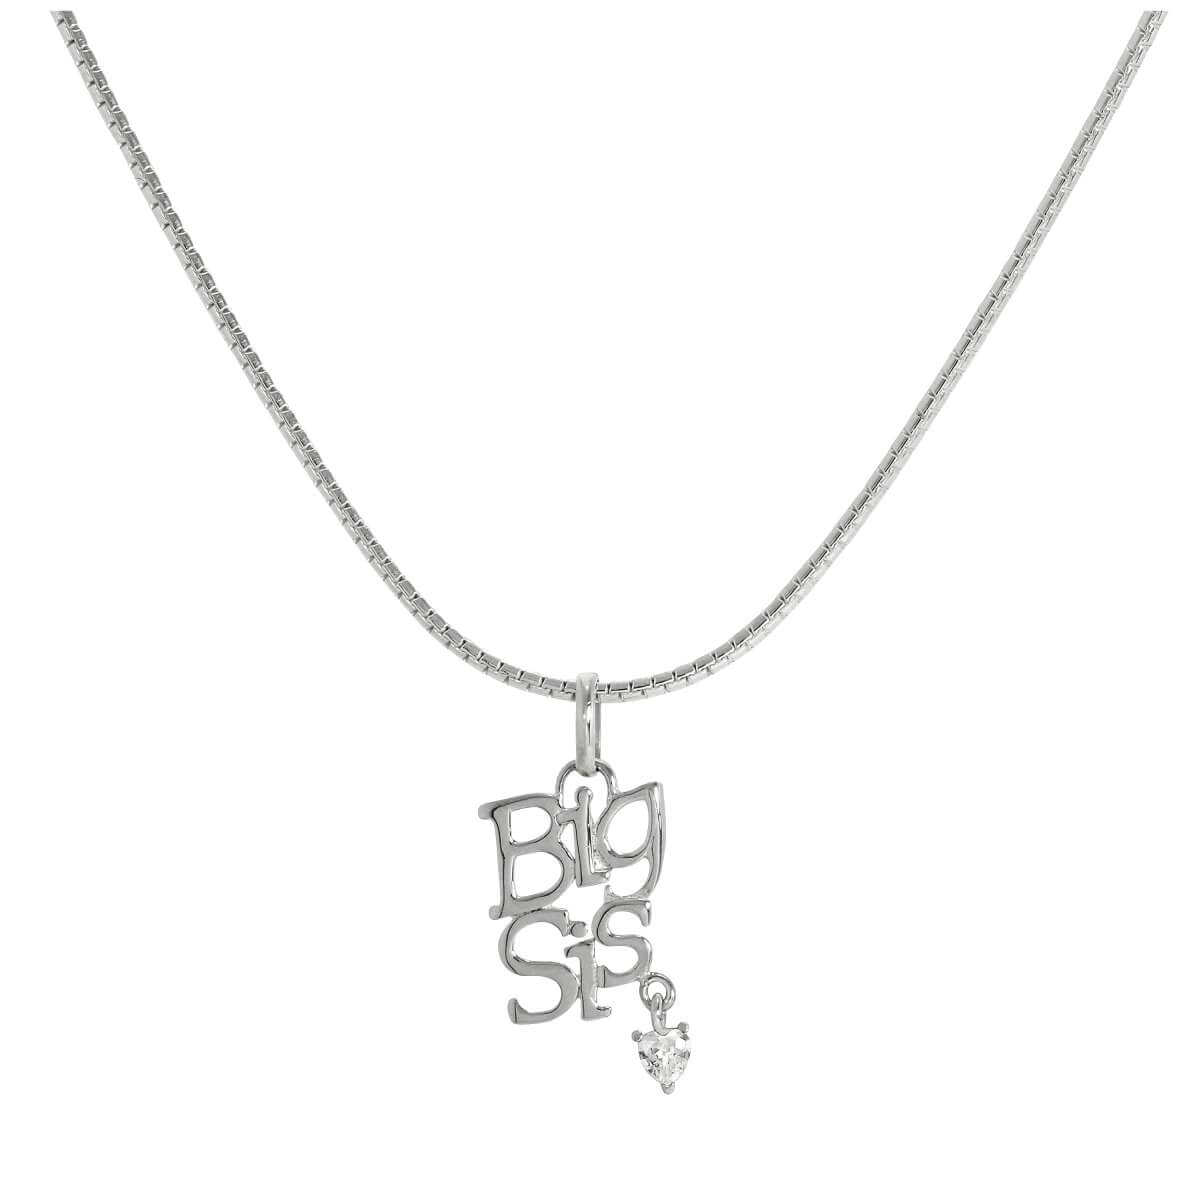 Sterling Silver Big Sis Pendant with CZ Crystal Heart on Chain 16 - 24 Inches